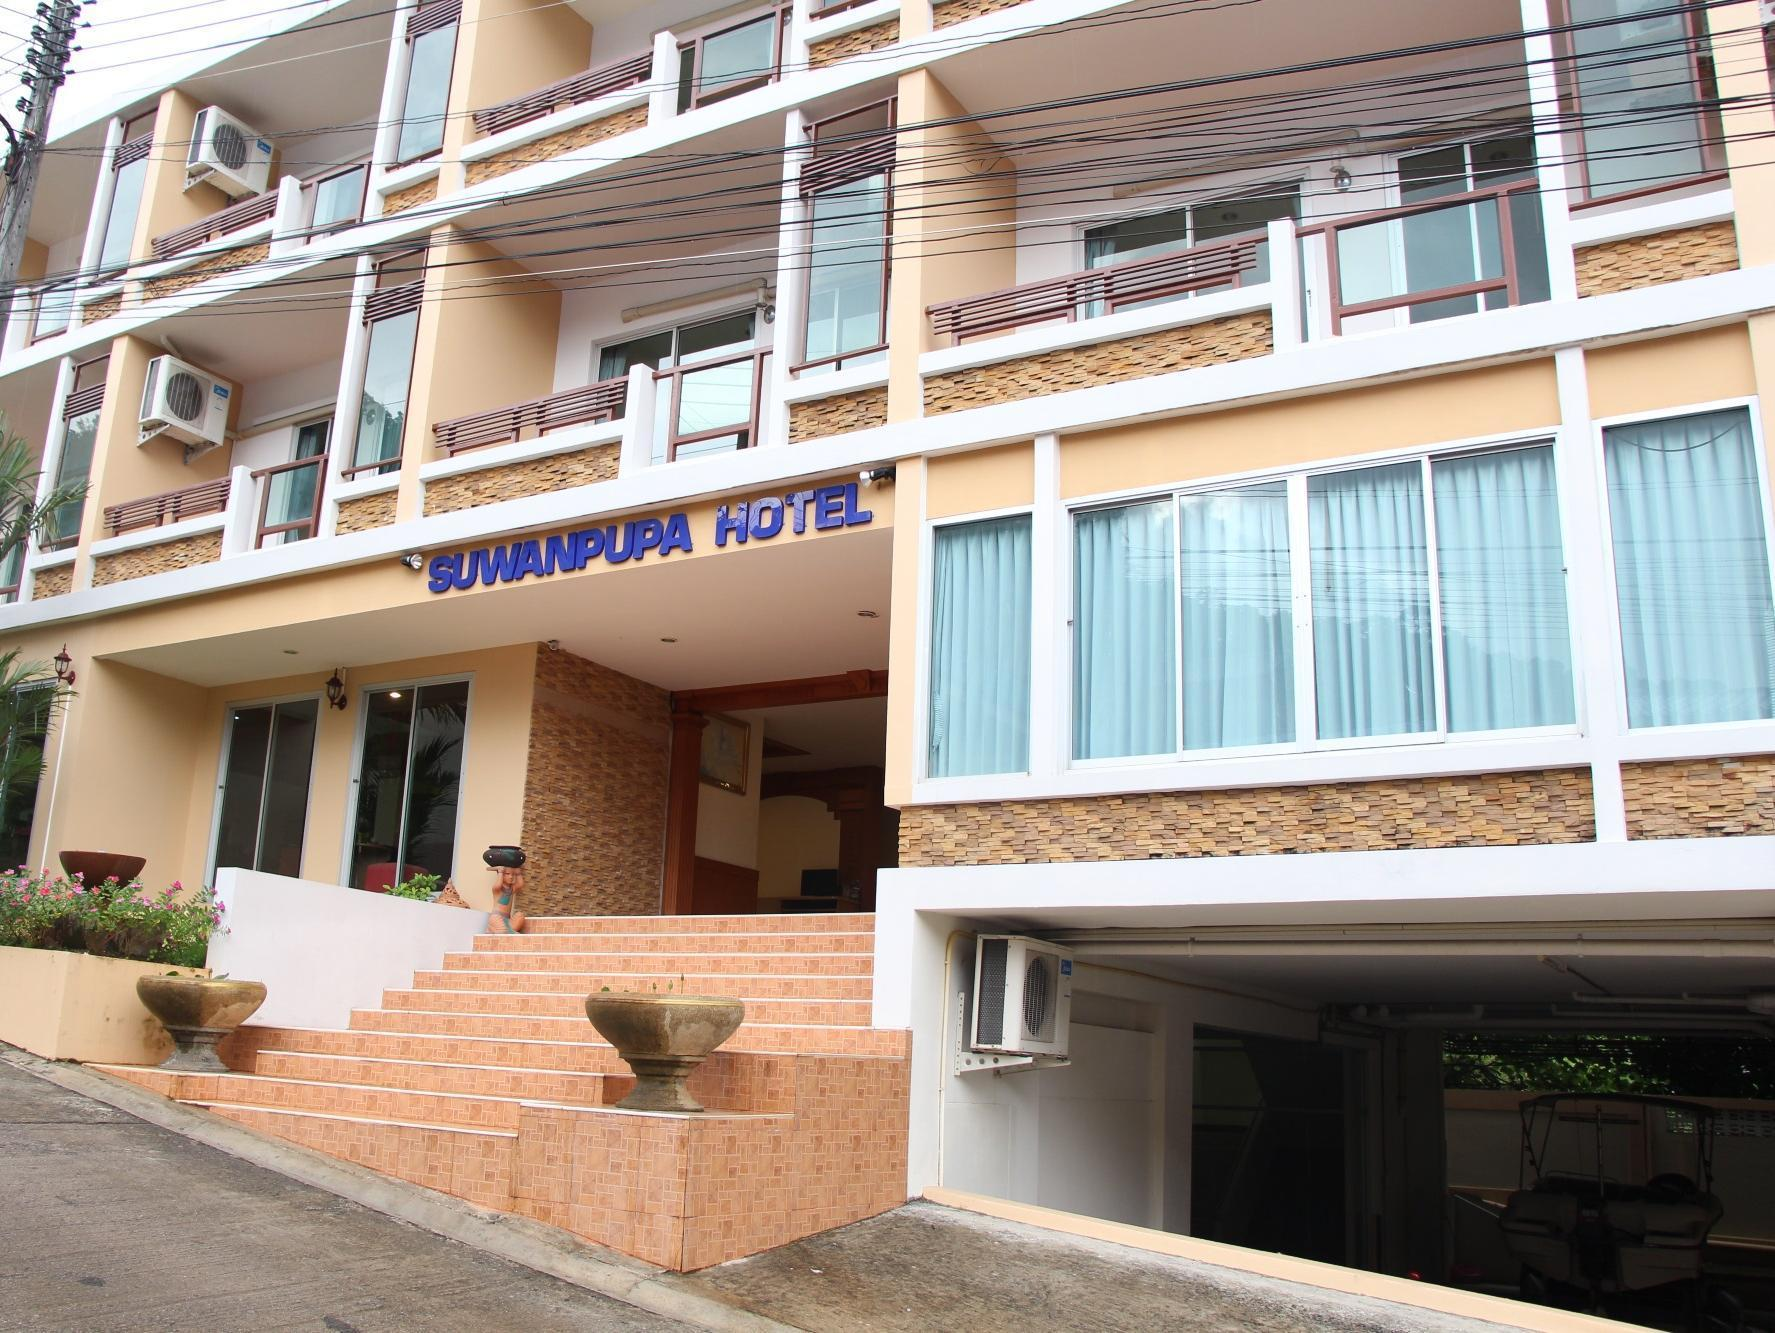 Suwanpupa Hotel - Hotels and Accommodation in Thailand, Asia